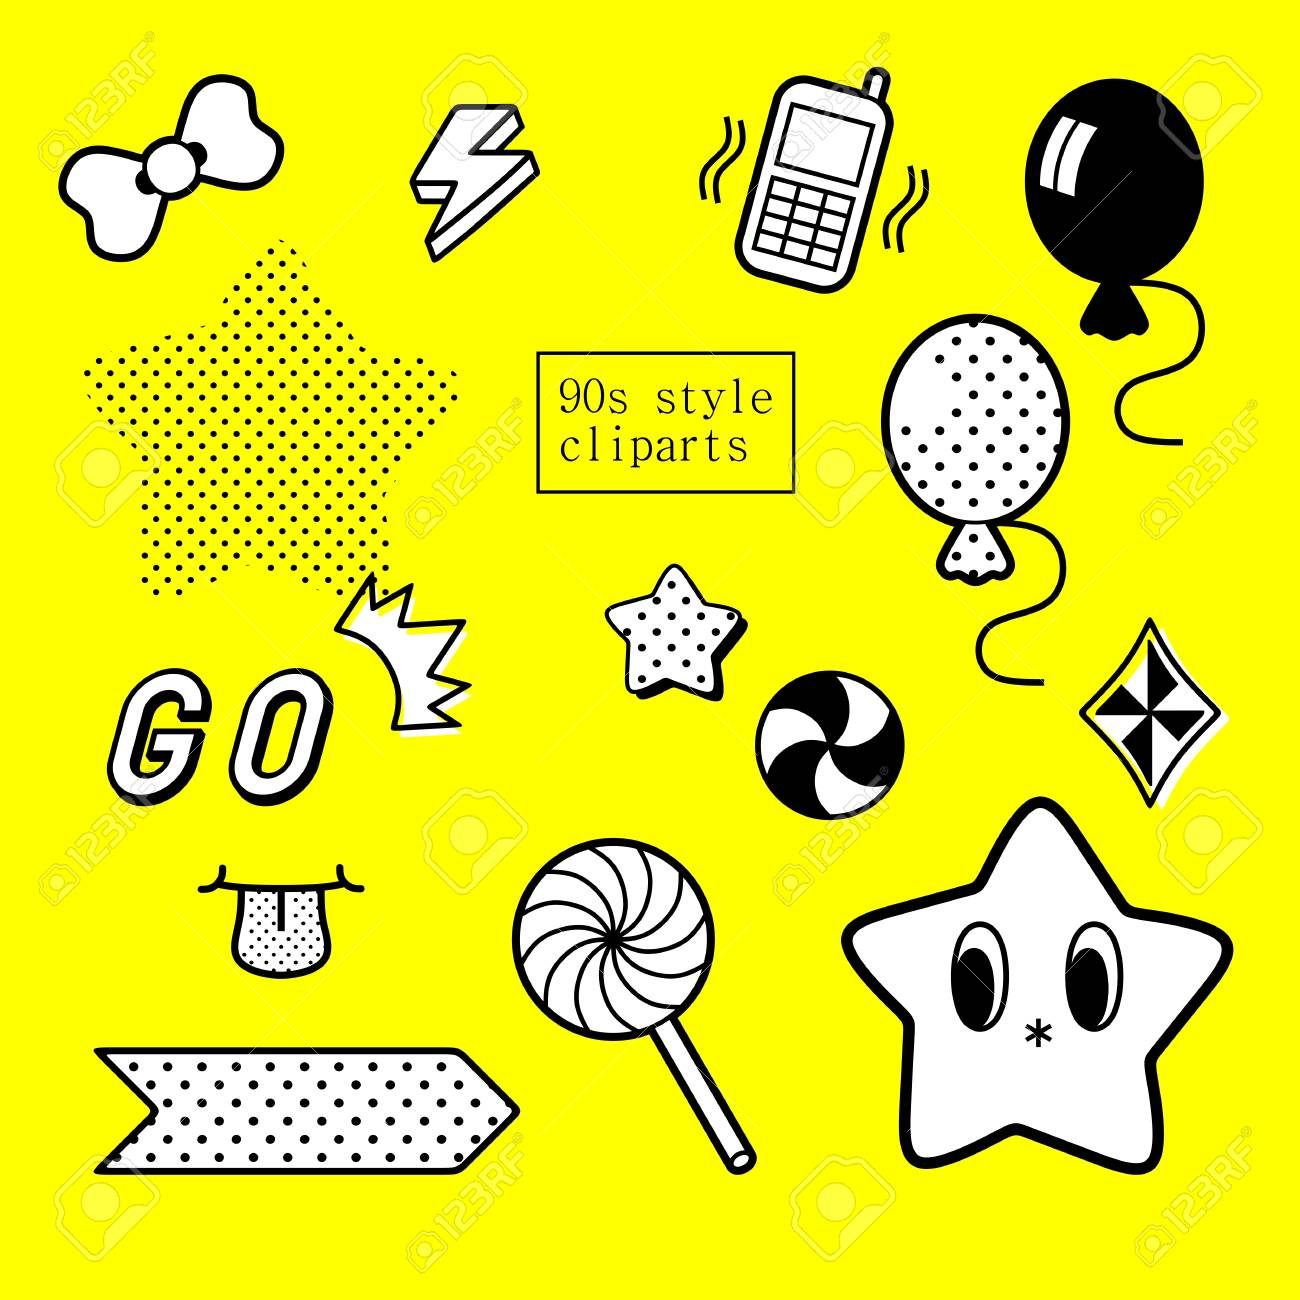 90's Design Inspired Decorative Clipart Set In Black And White.